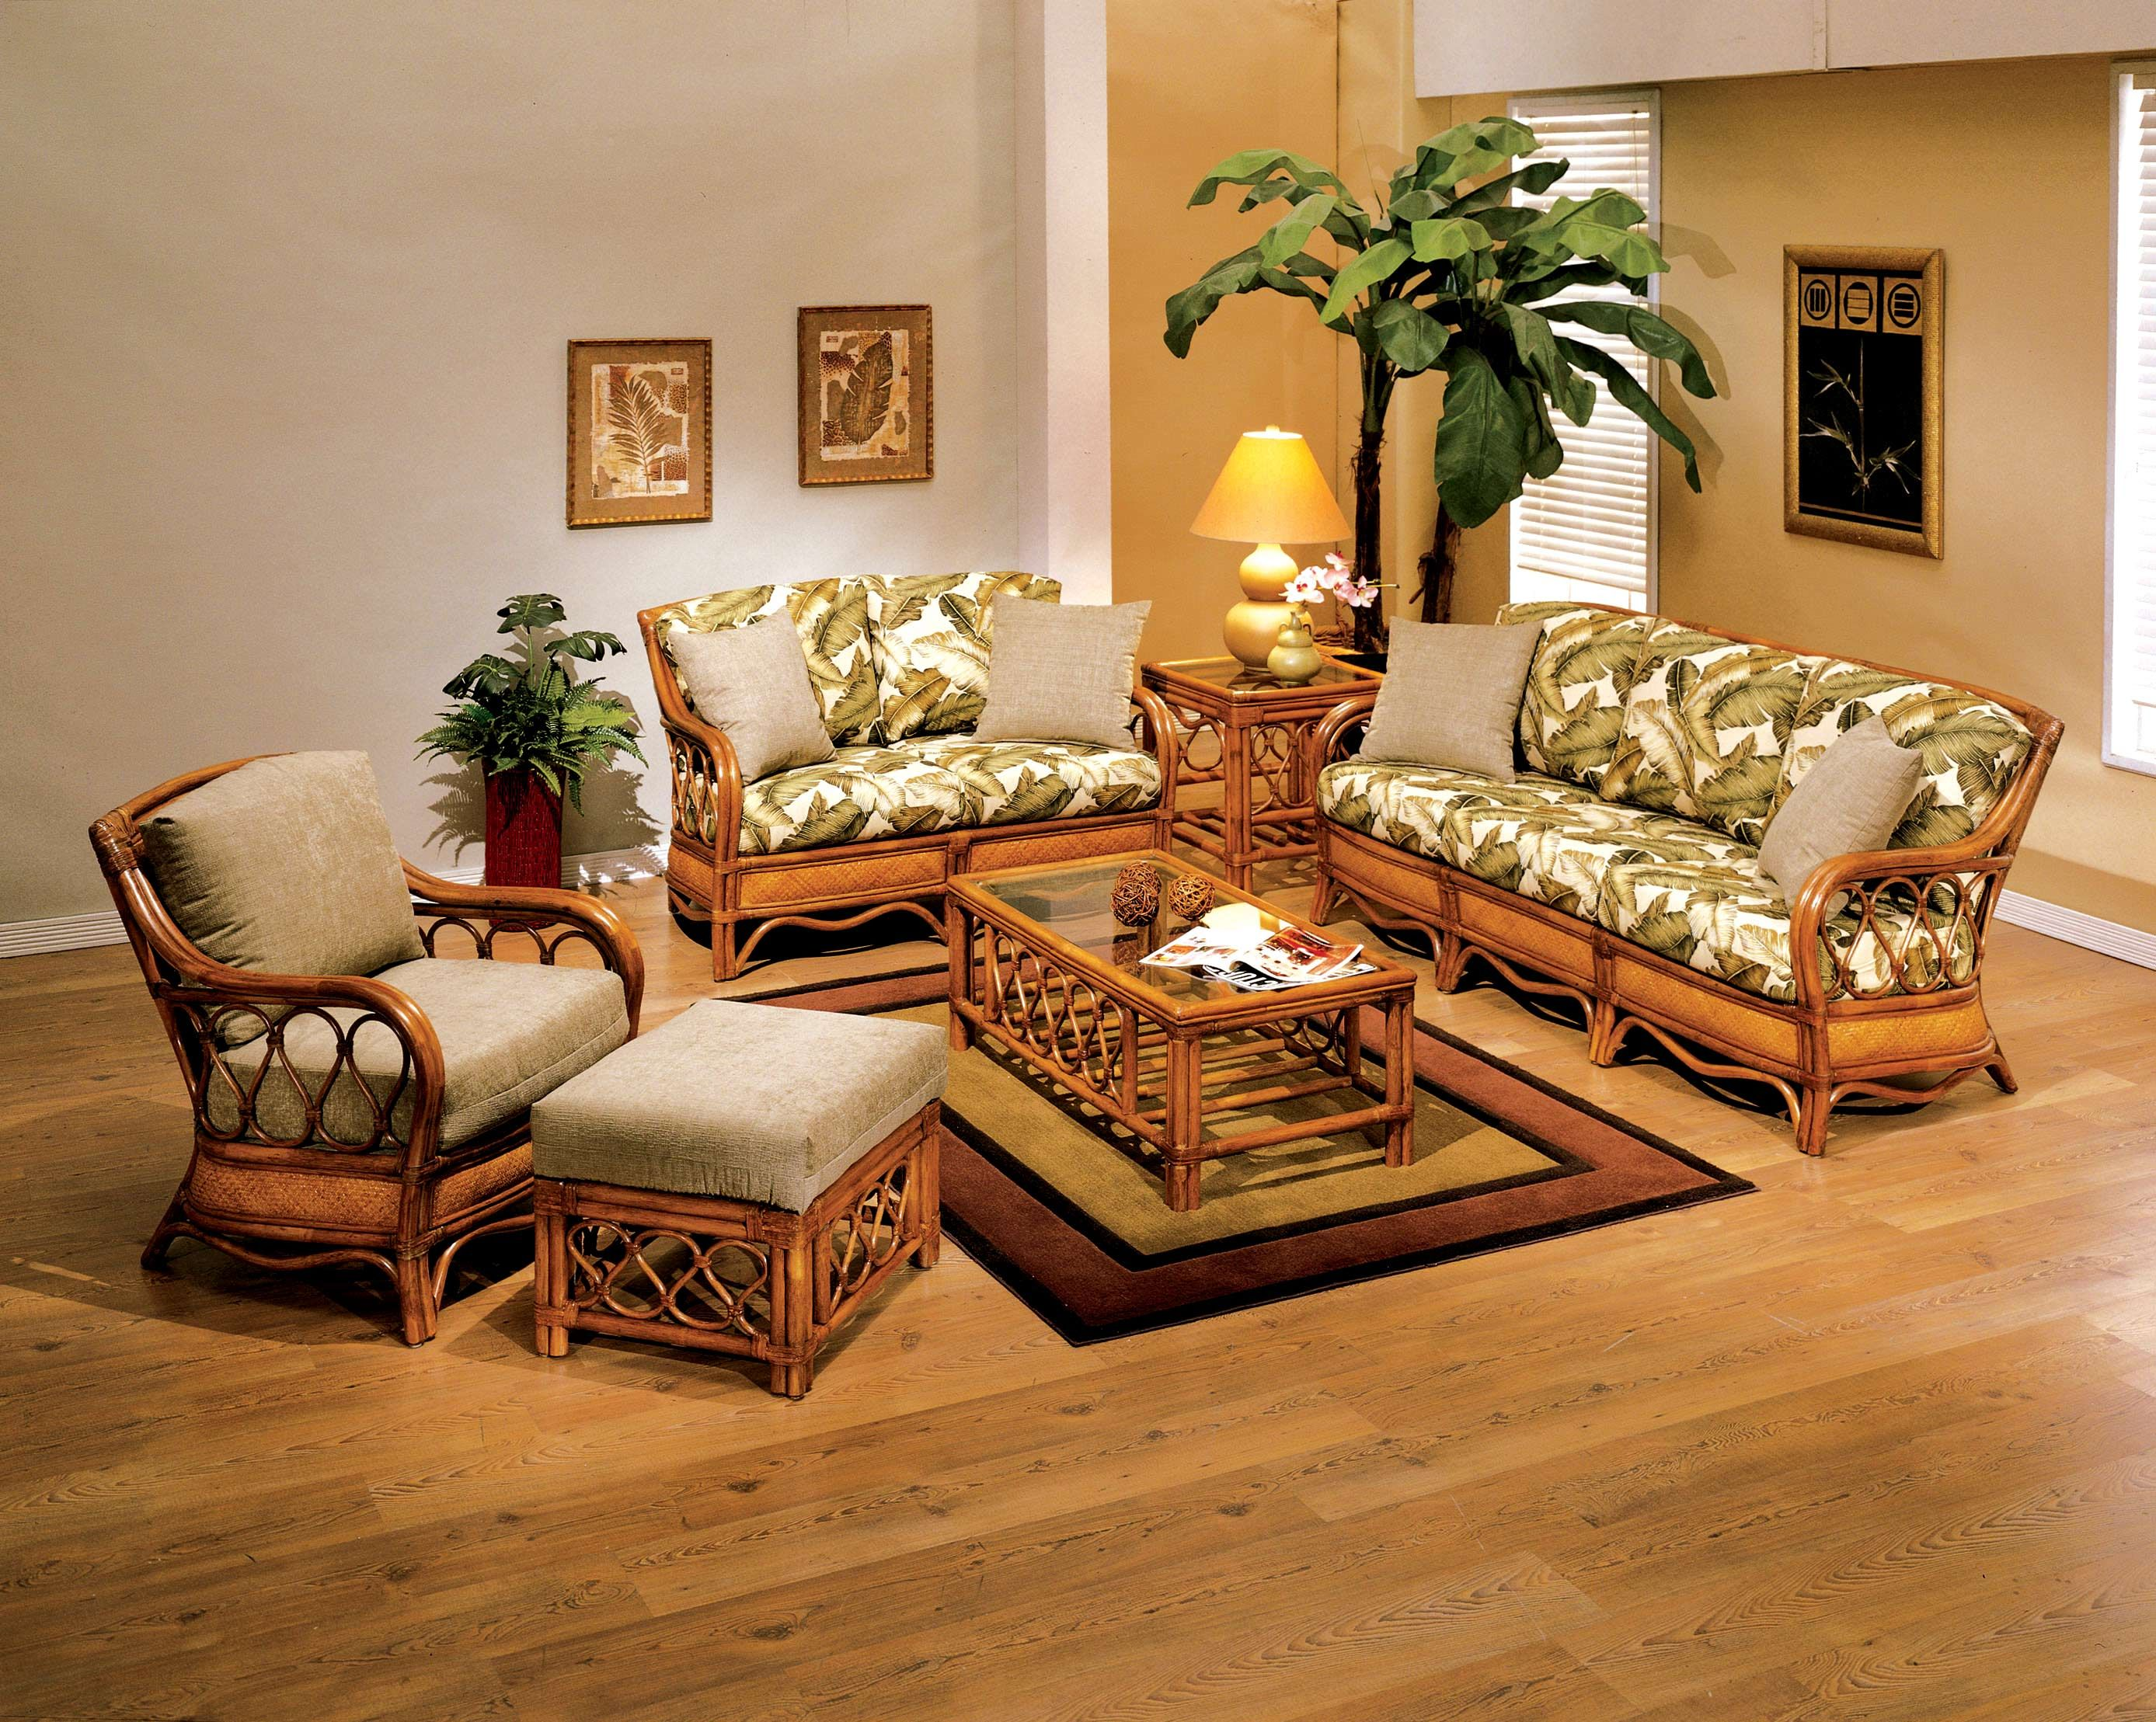 Rattan Wicker Bamboo Chairs  Rattan Living Room Furniture Prepossessing Chairs Design For Living Room Design Inspiration